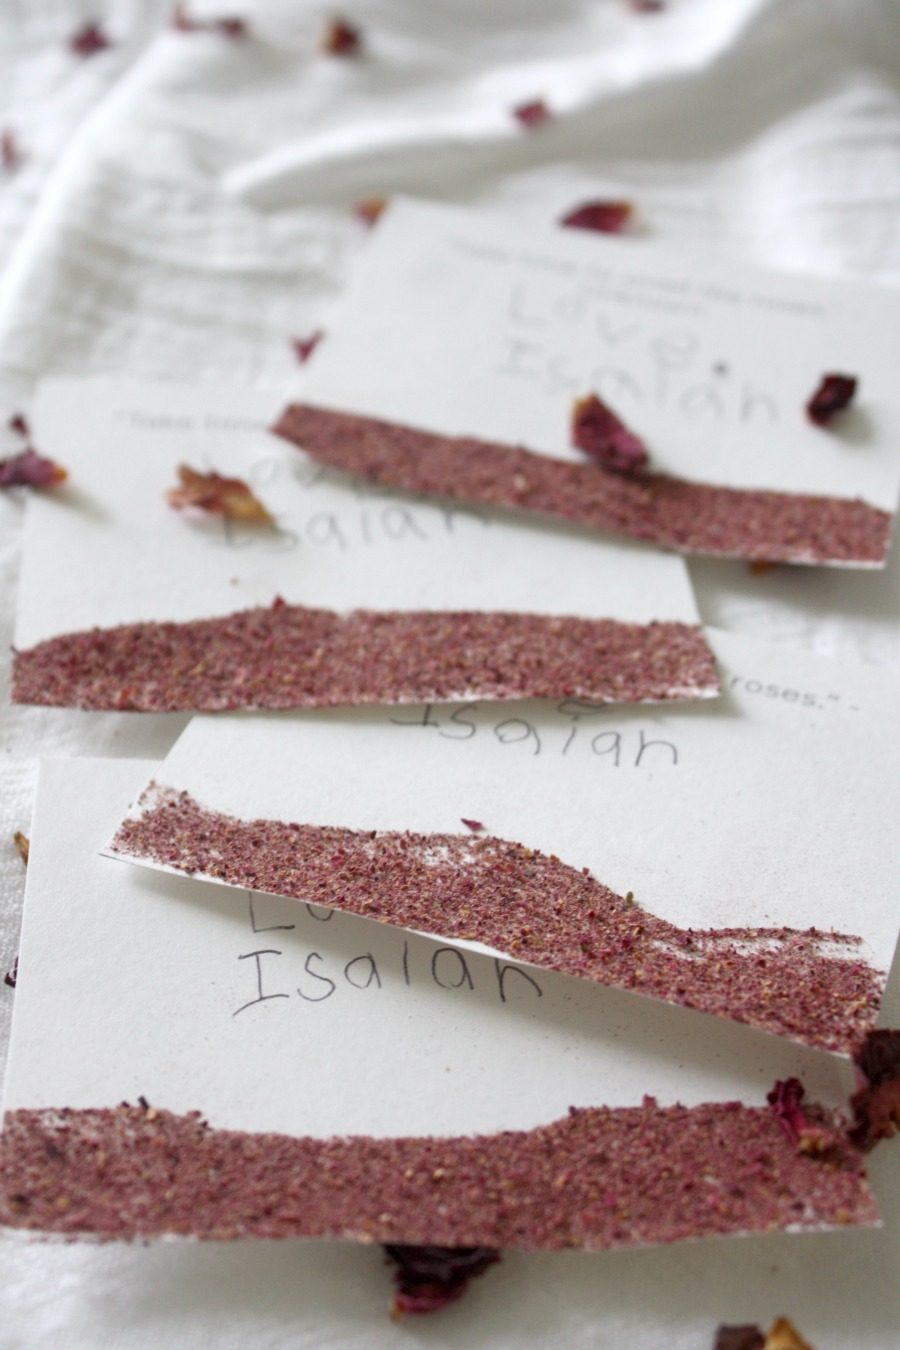 How To Make Scented Rose Dust Valentine's Day Cards For Children   Growing Up Herbal   Make DIY Valentine's Day cards with herbs and essential oils for loved ones this year!